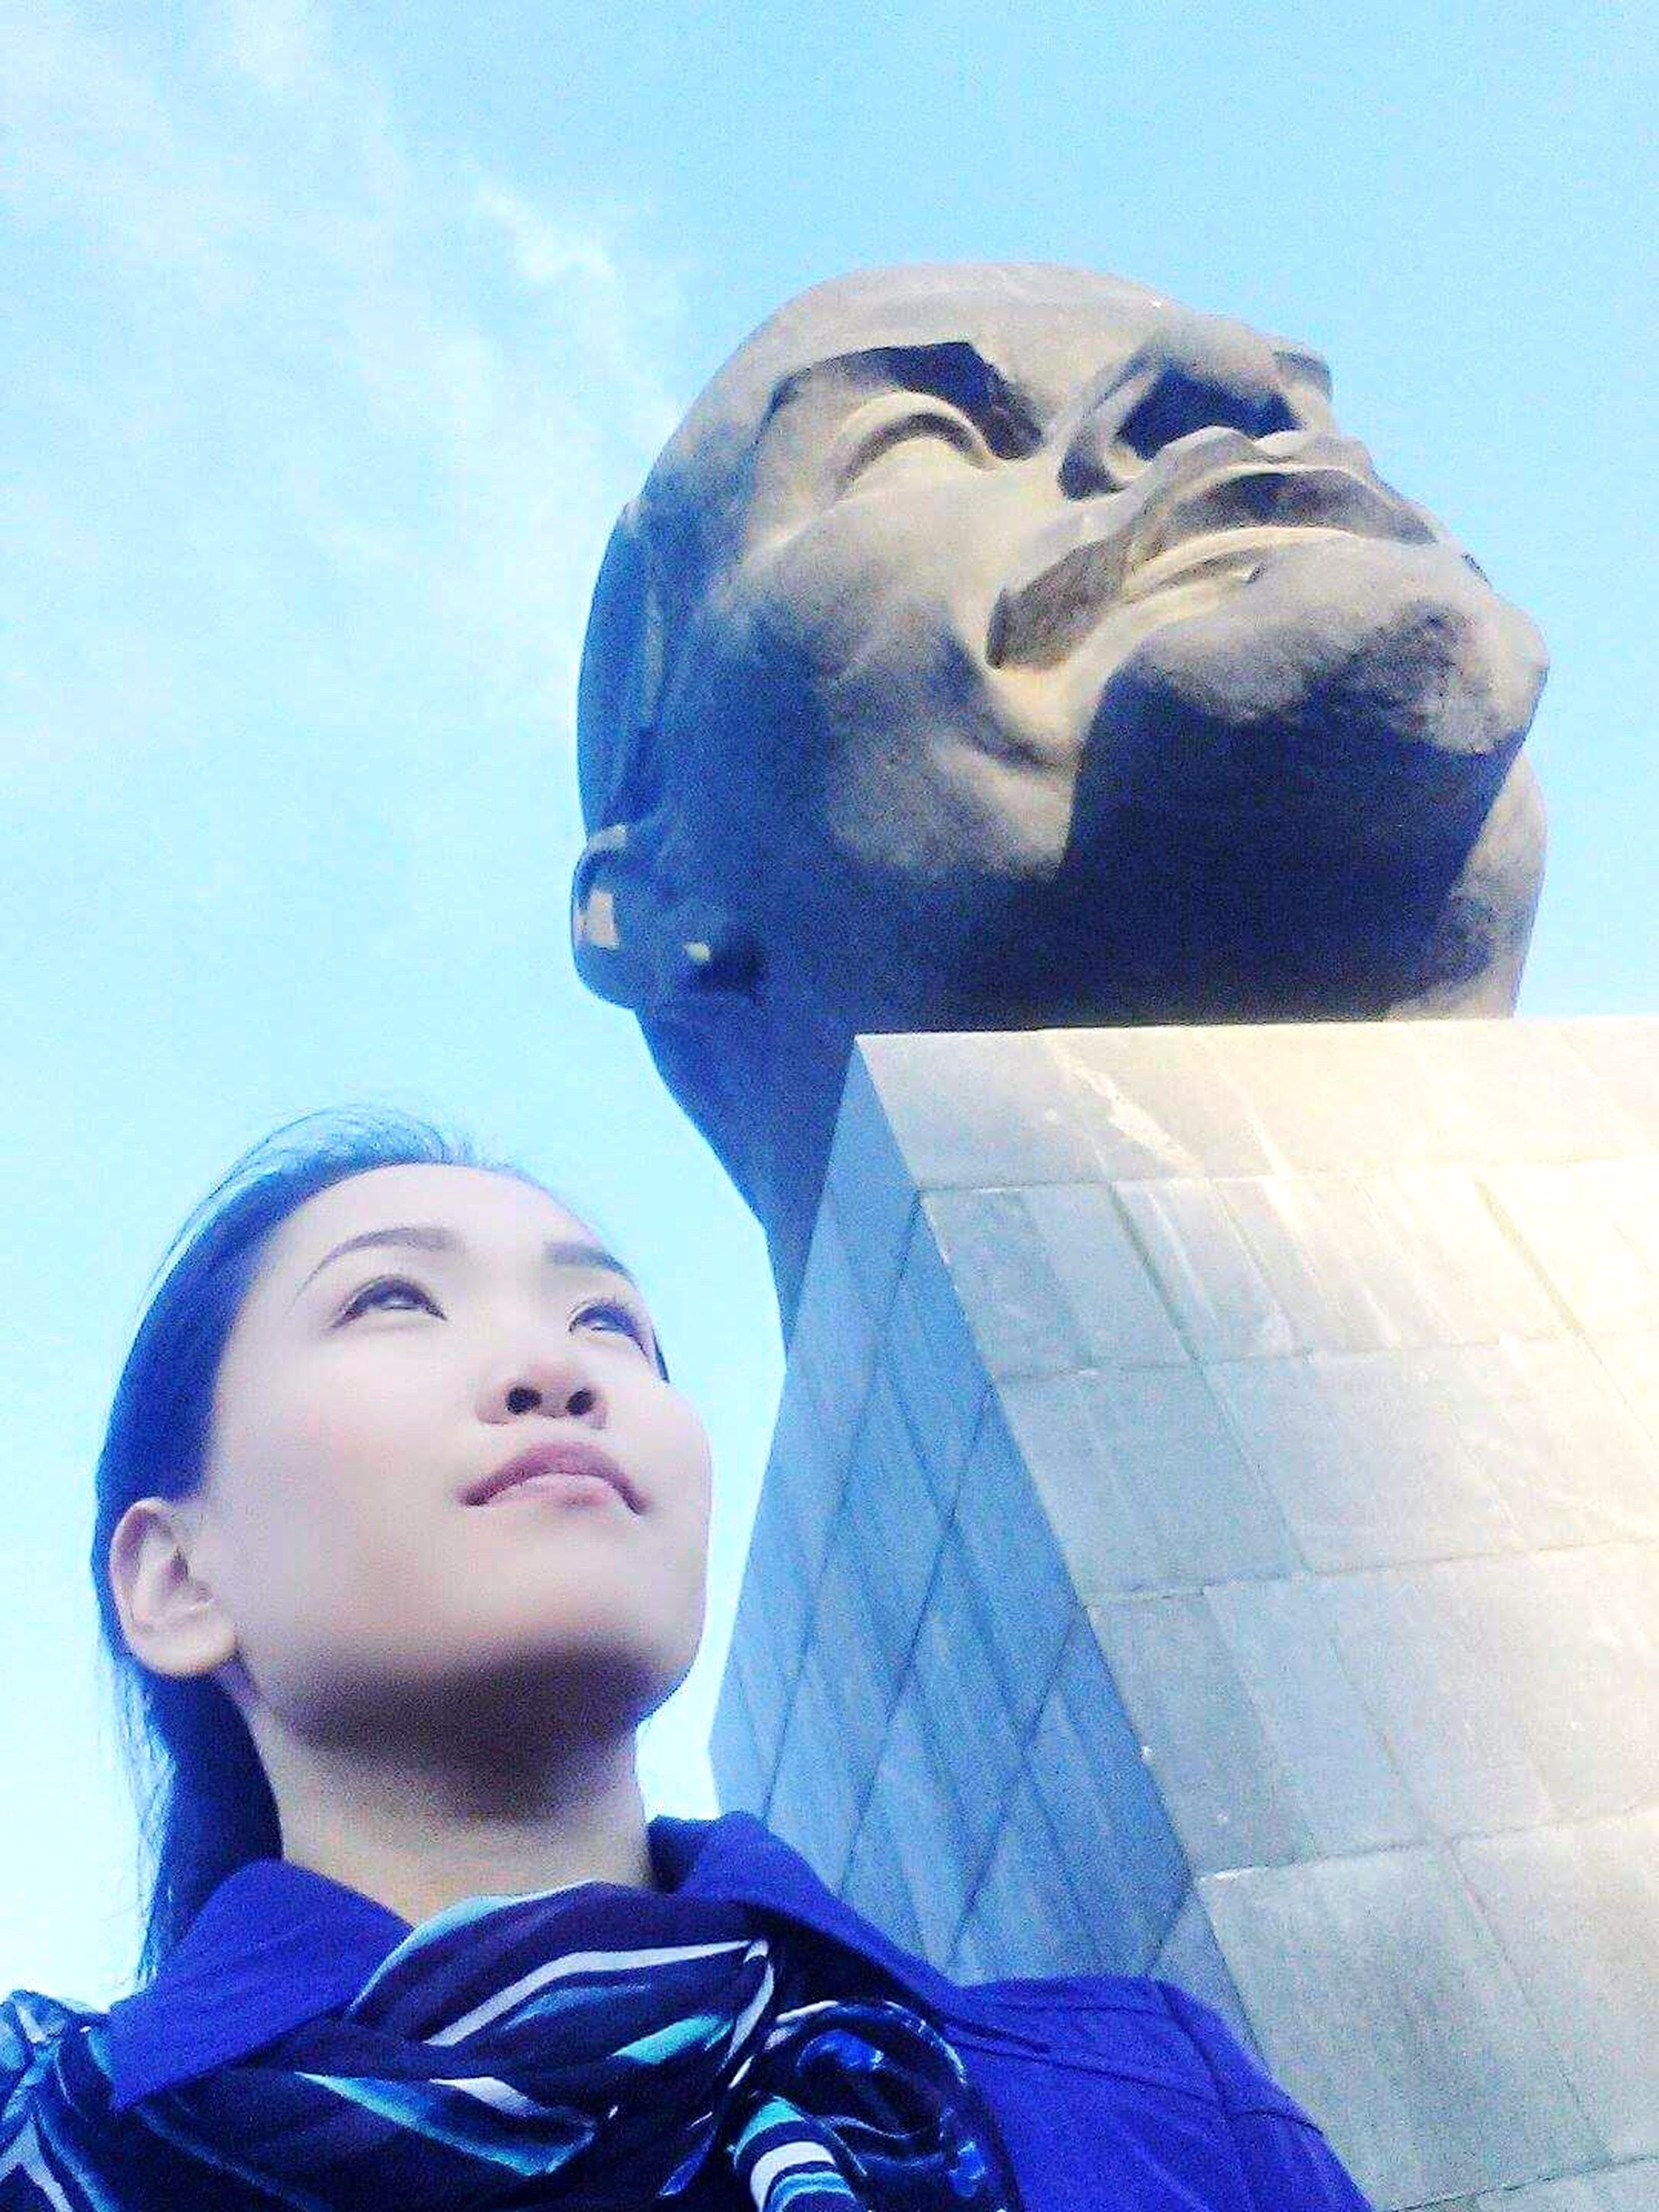 sky, business, women, low angle view, togetherness, human face, city, love, two people, cloud - sky, statue, outdoors, friendship, young women, men, corporate business, day, young adult, close-up, adult, people